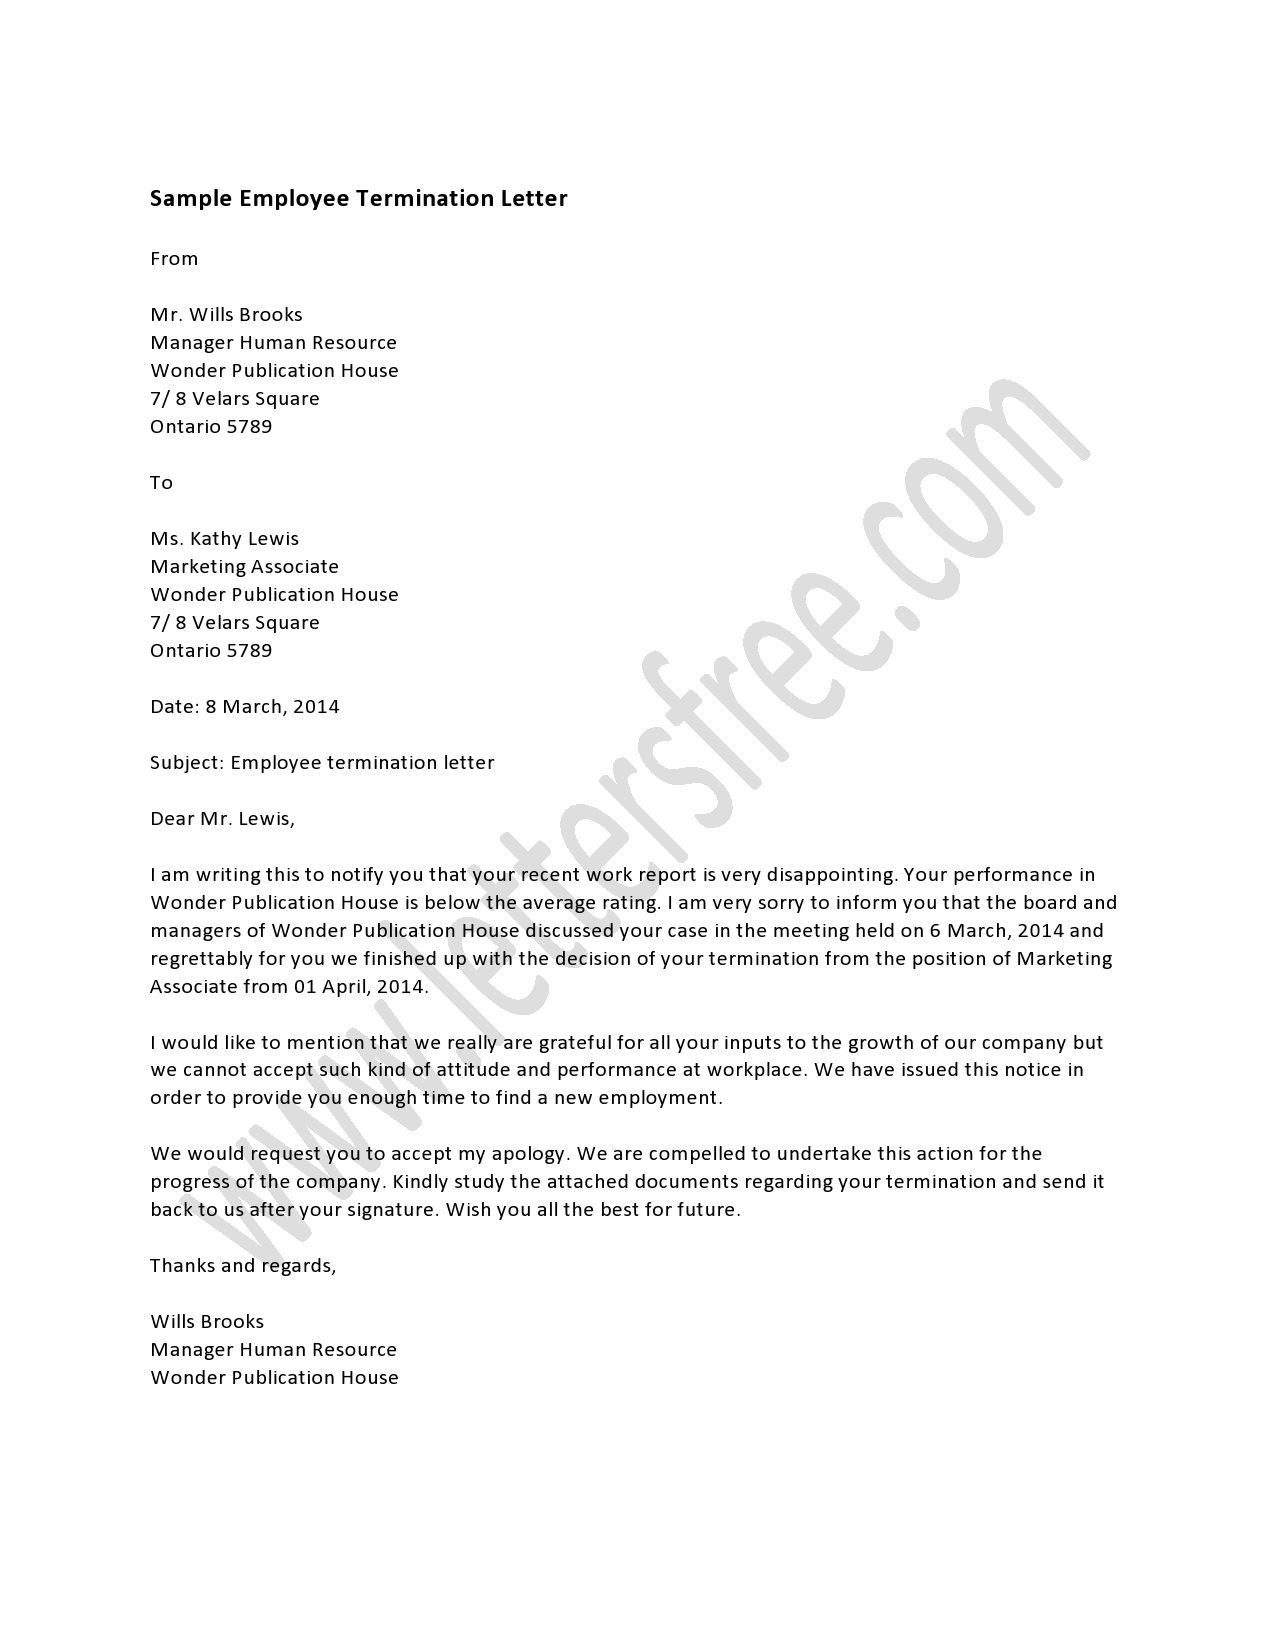 Employee Termination Letter is a template used by companies to – How to Write a Termination Letter to a Company